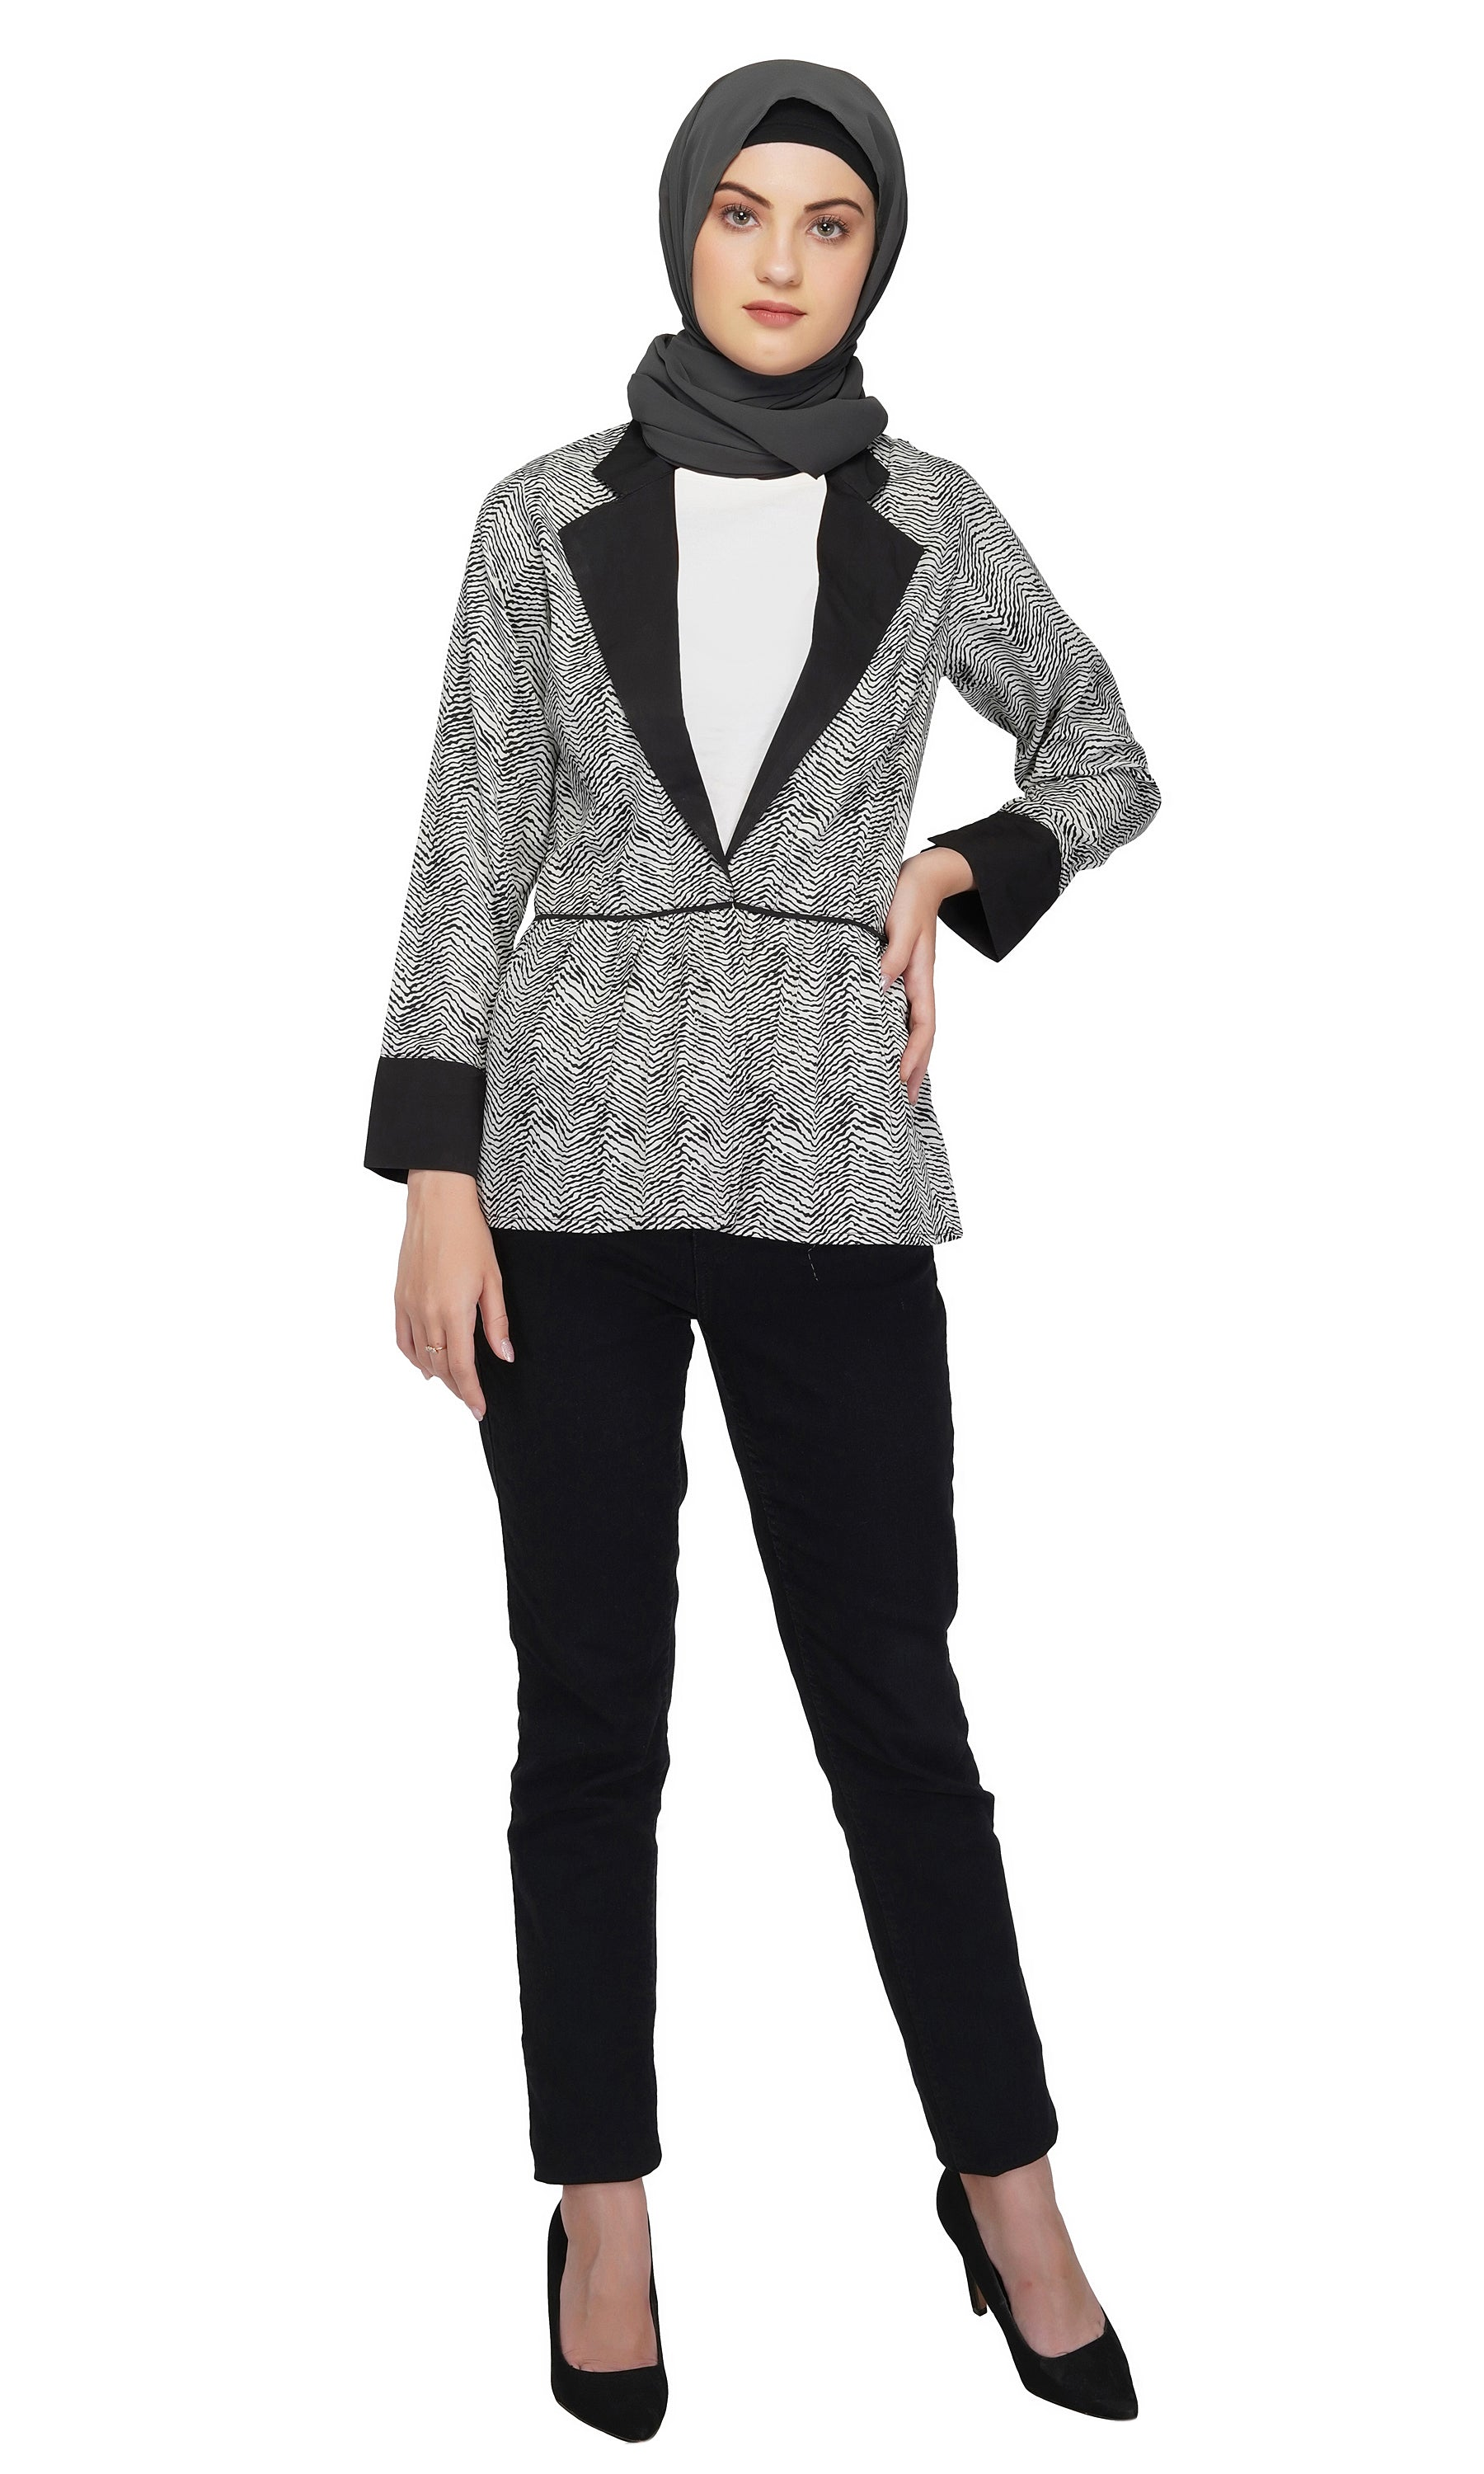 Salt and Pepper Jacket Coat By Ruqsar